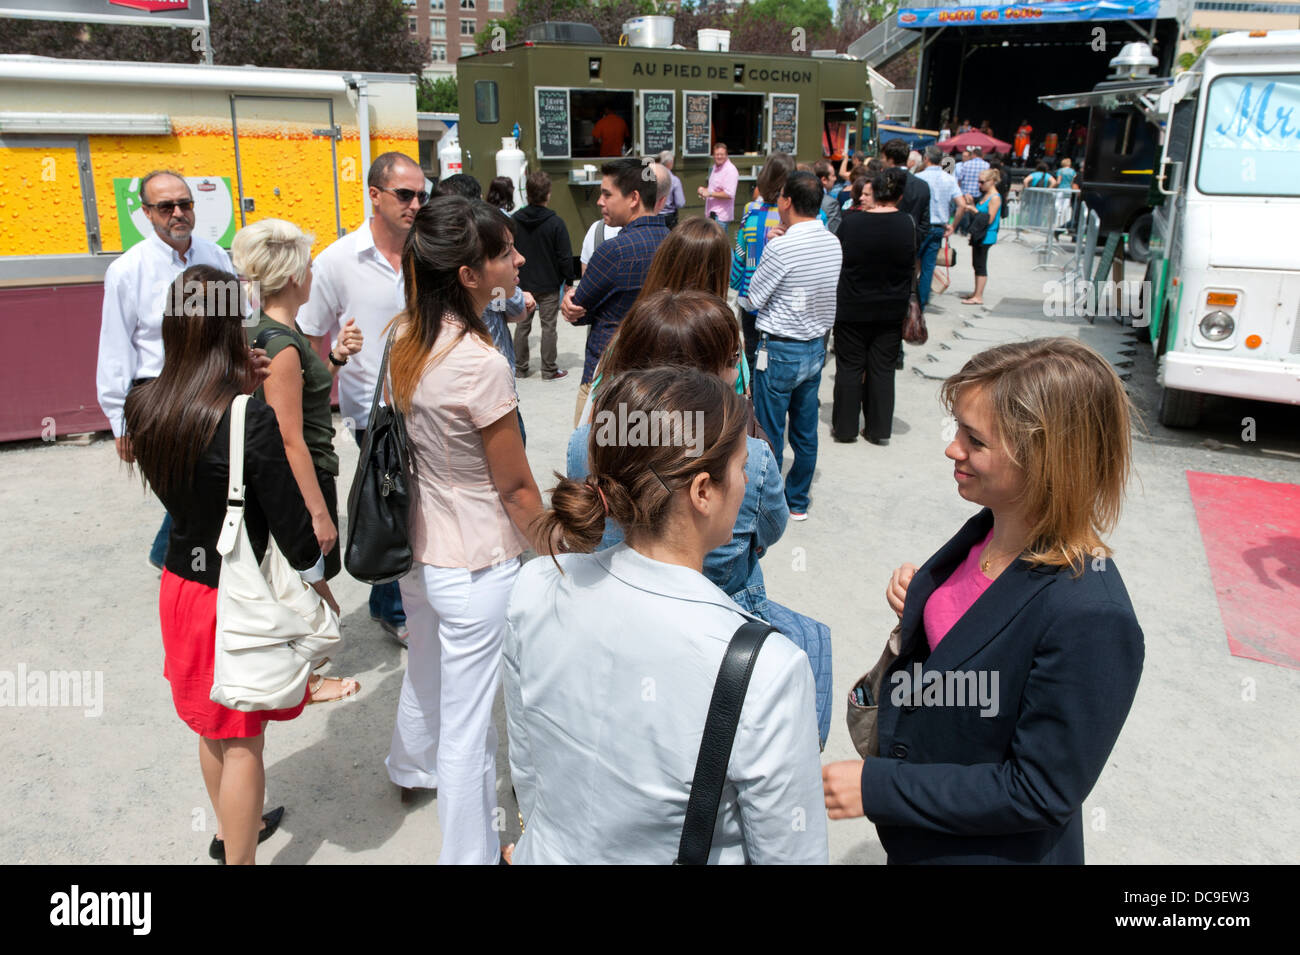 People line up at a mobile food vendor, Montreal. - Stock Image